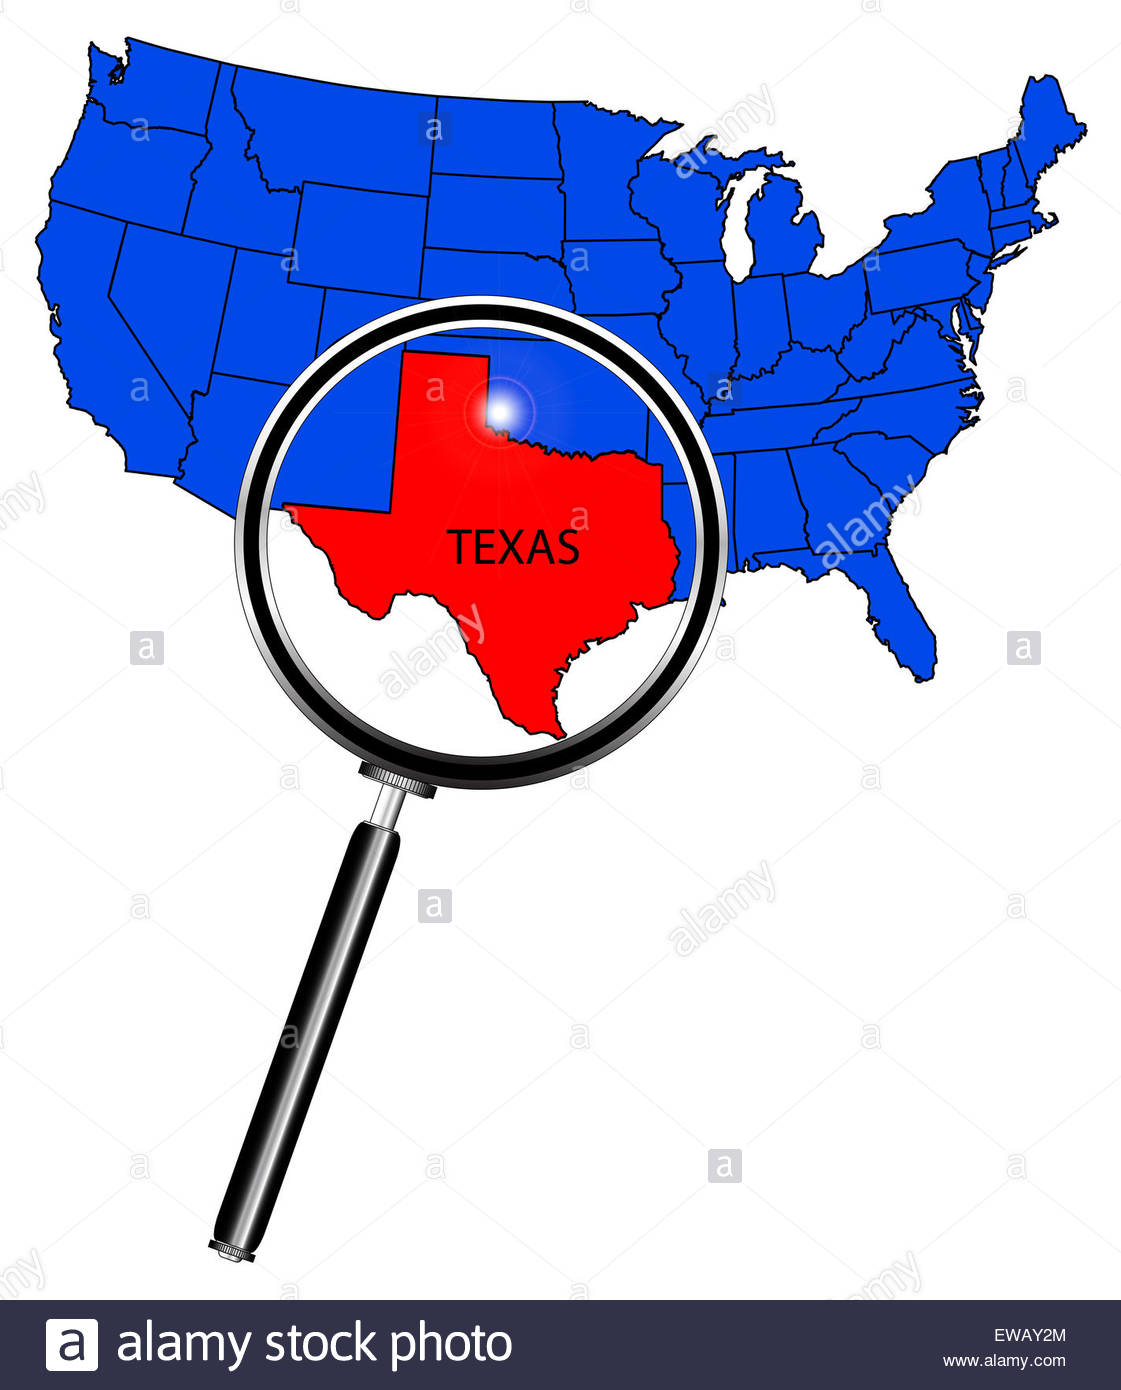 Usa with texas map clipart graphic black and white Texas Map Clipart | Free download best Texas Map Clipart on ... graphic black and white